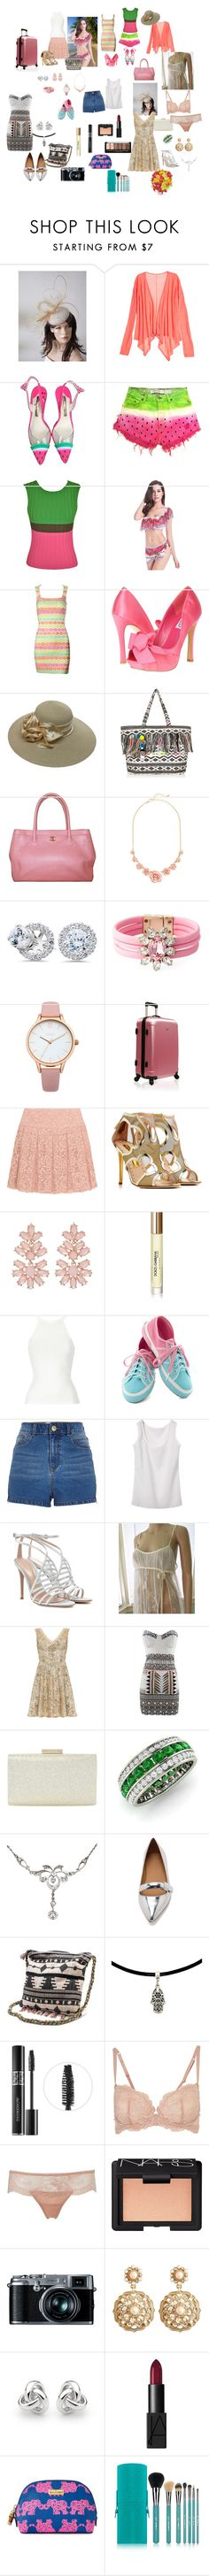 """The Getaway"" by bekkibue ❤ liked on Polyvore featuring Calypso St. Barth, Sophia Webster, Issey Miyake, Versace, rsvp, Swan, New Look, Bliss Diamond, Shourouk and Oasis"